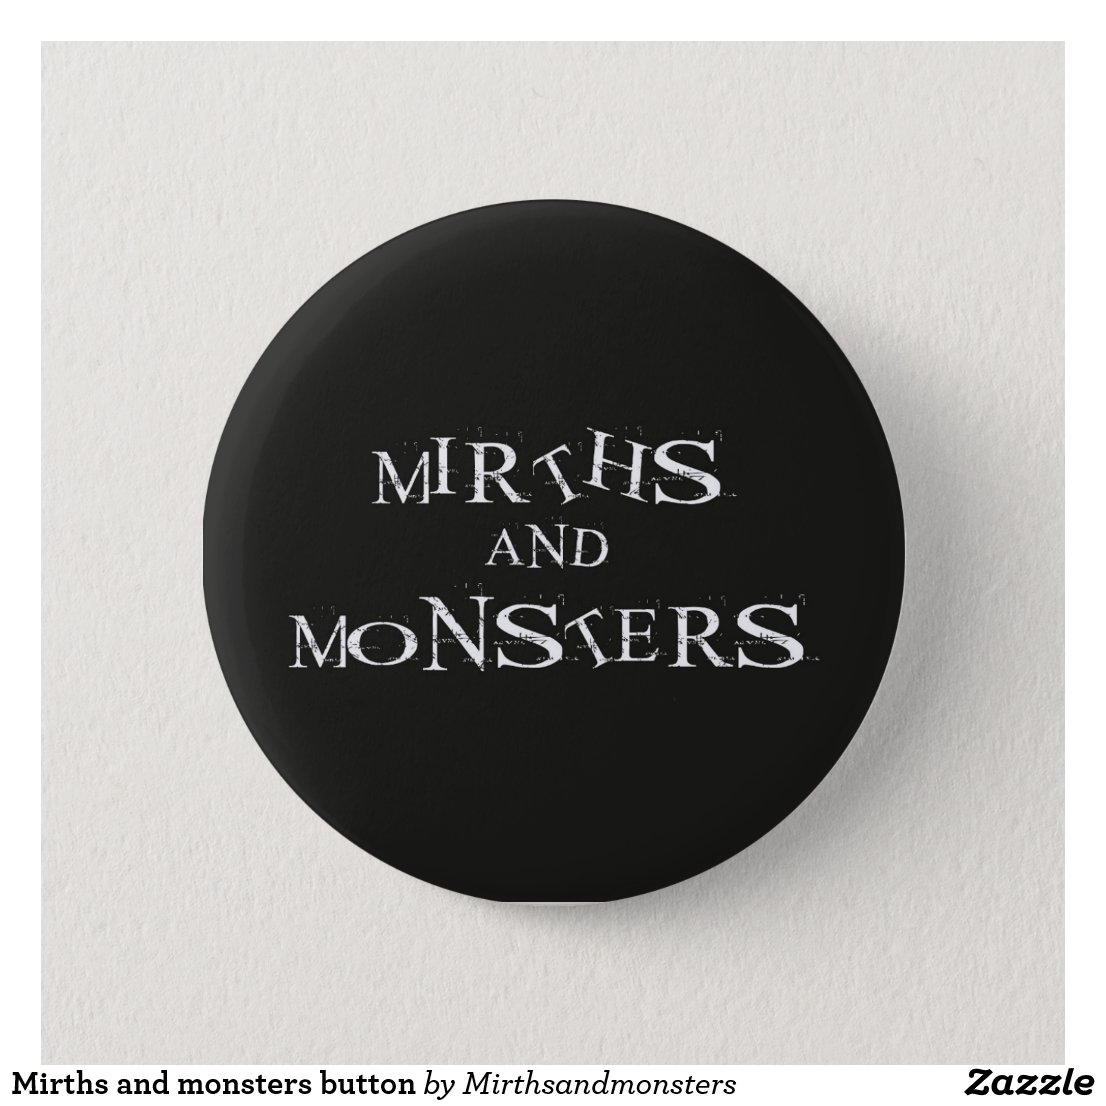 Mirths and monsters button